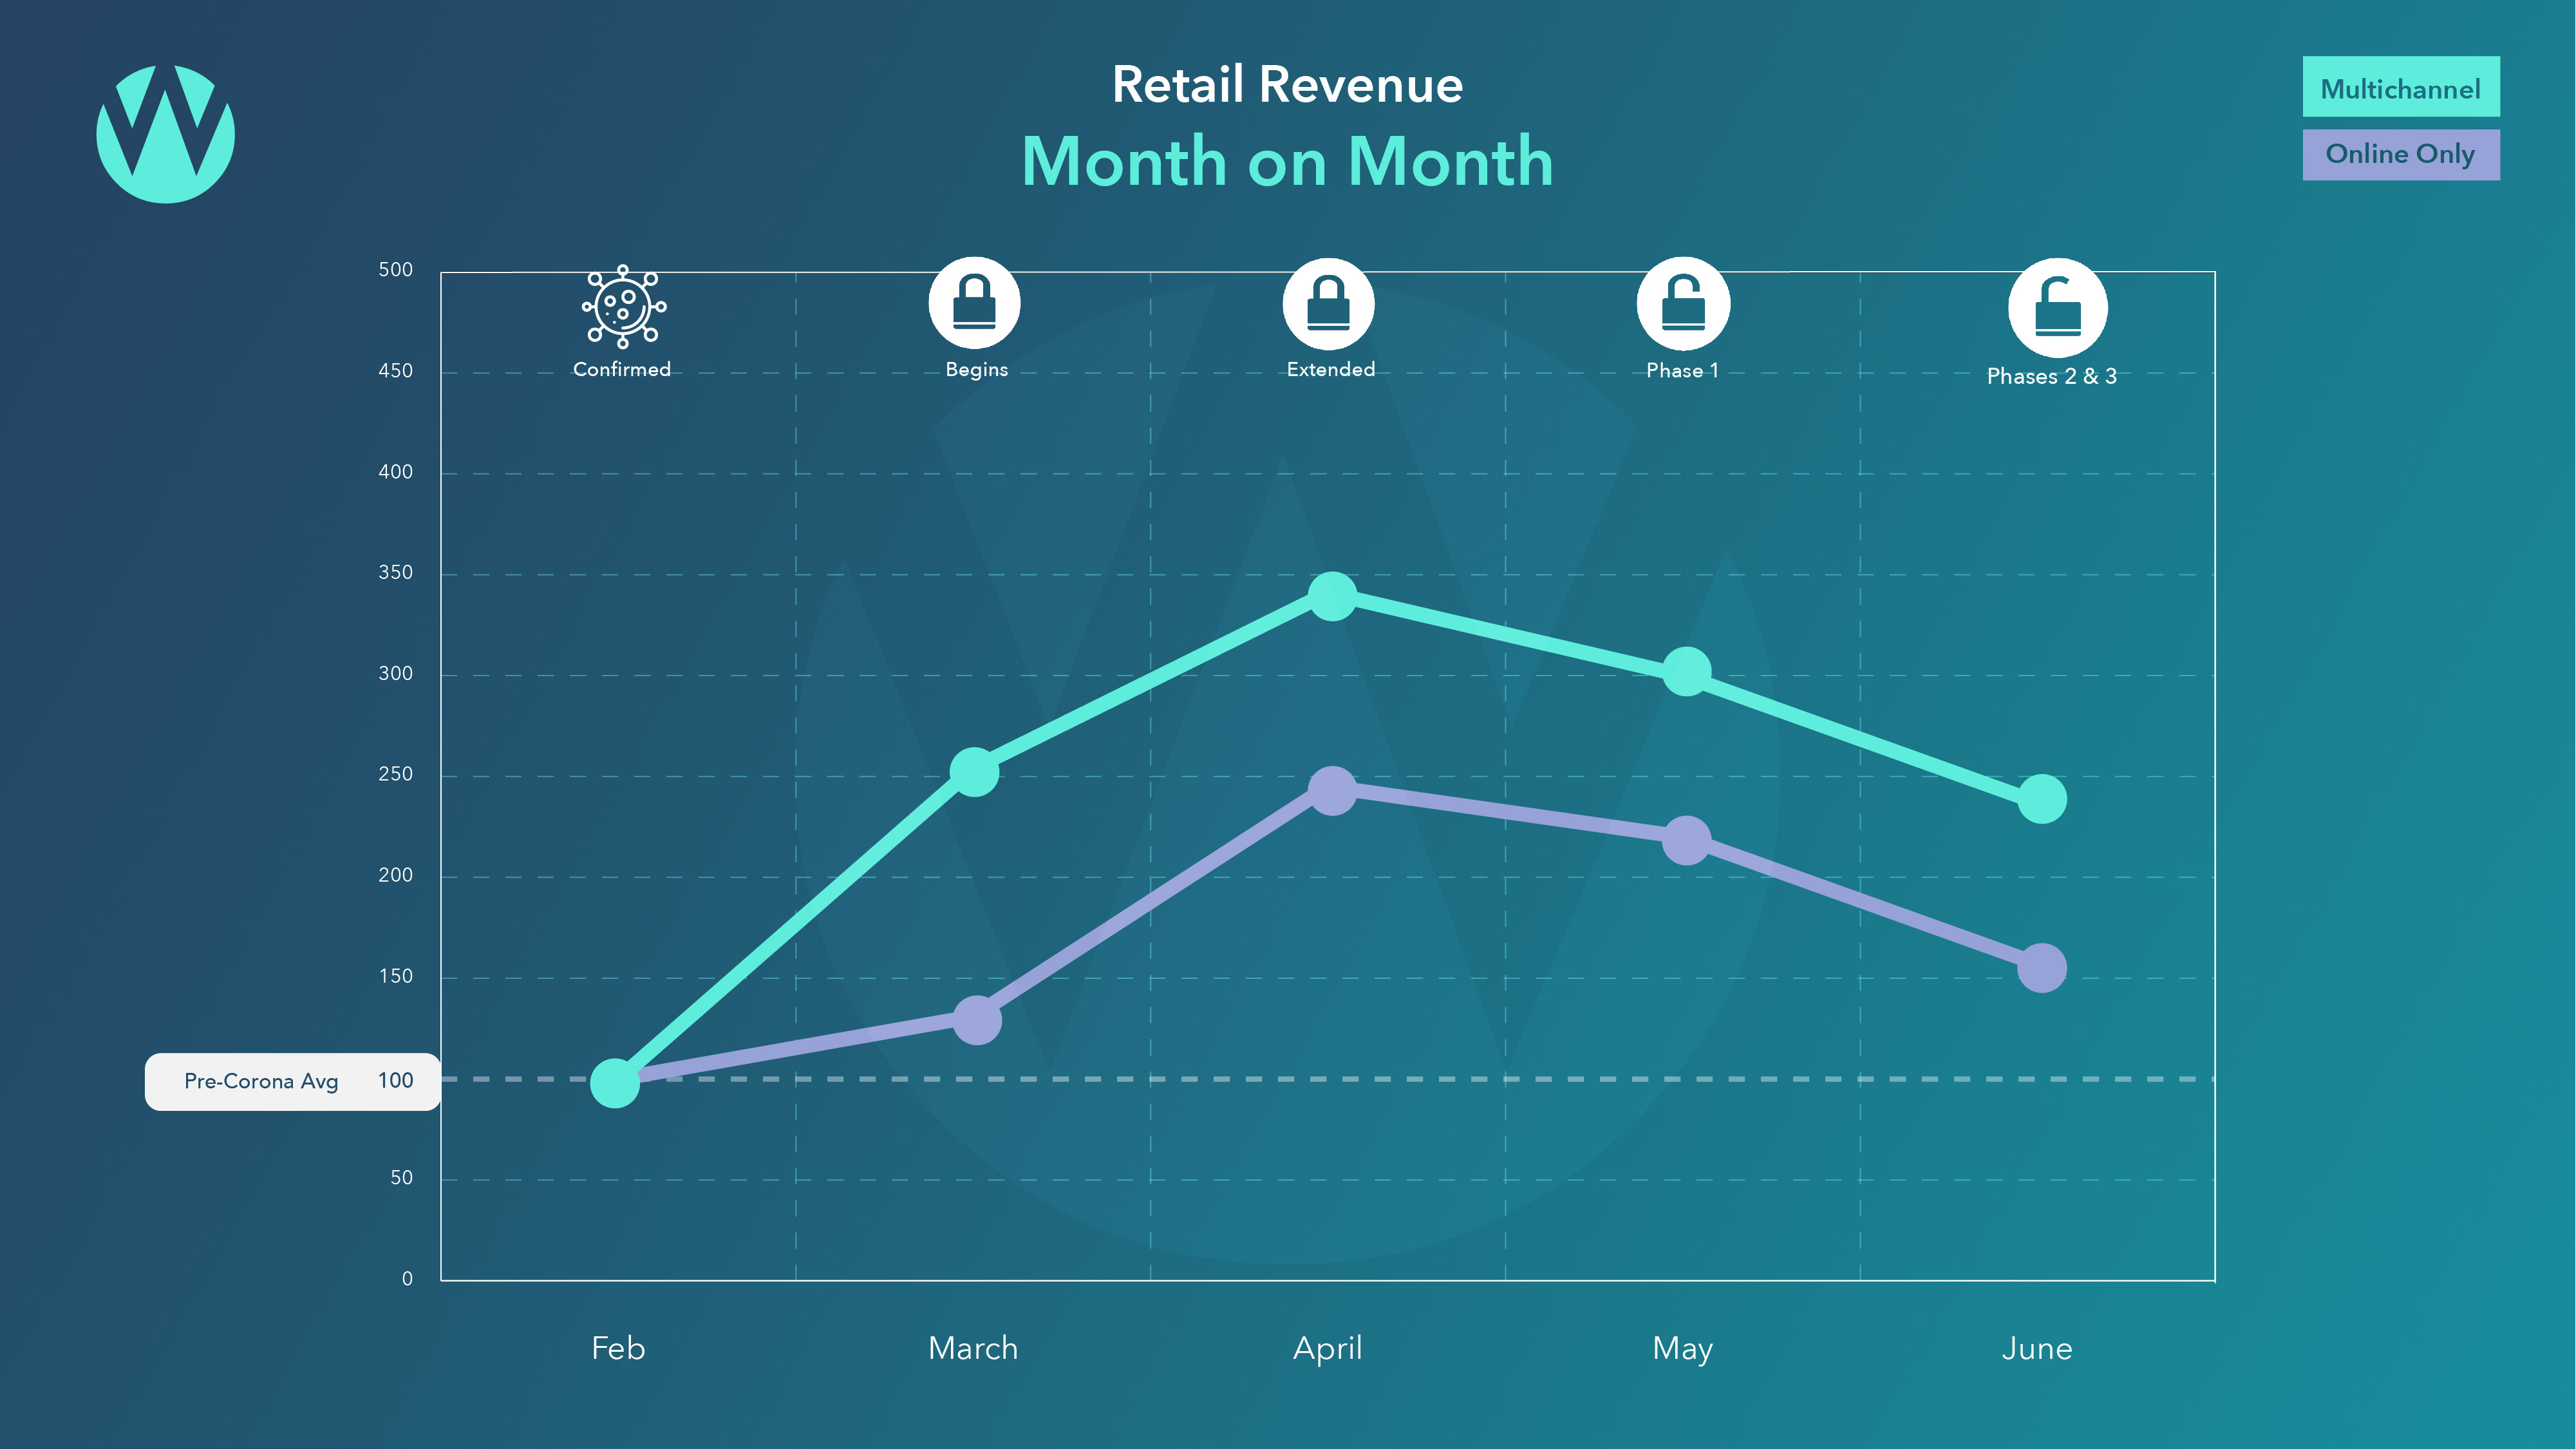 Retail Revenue month on month Feb to June 2020